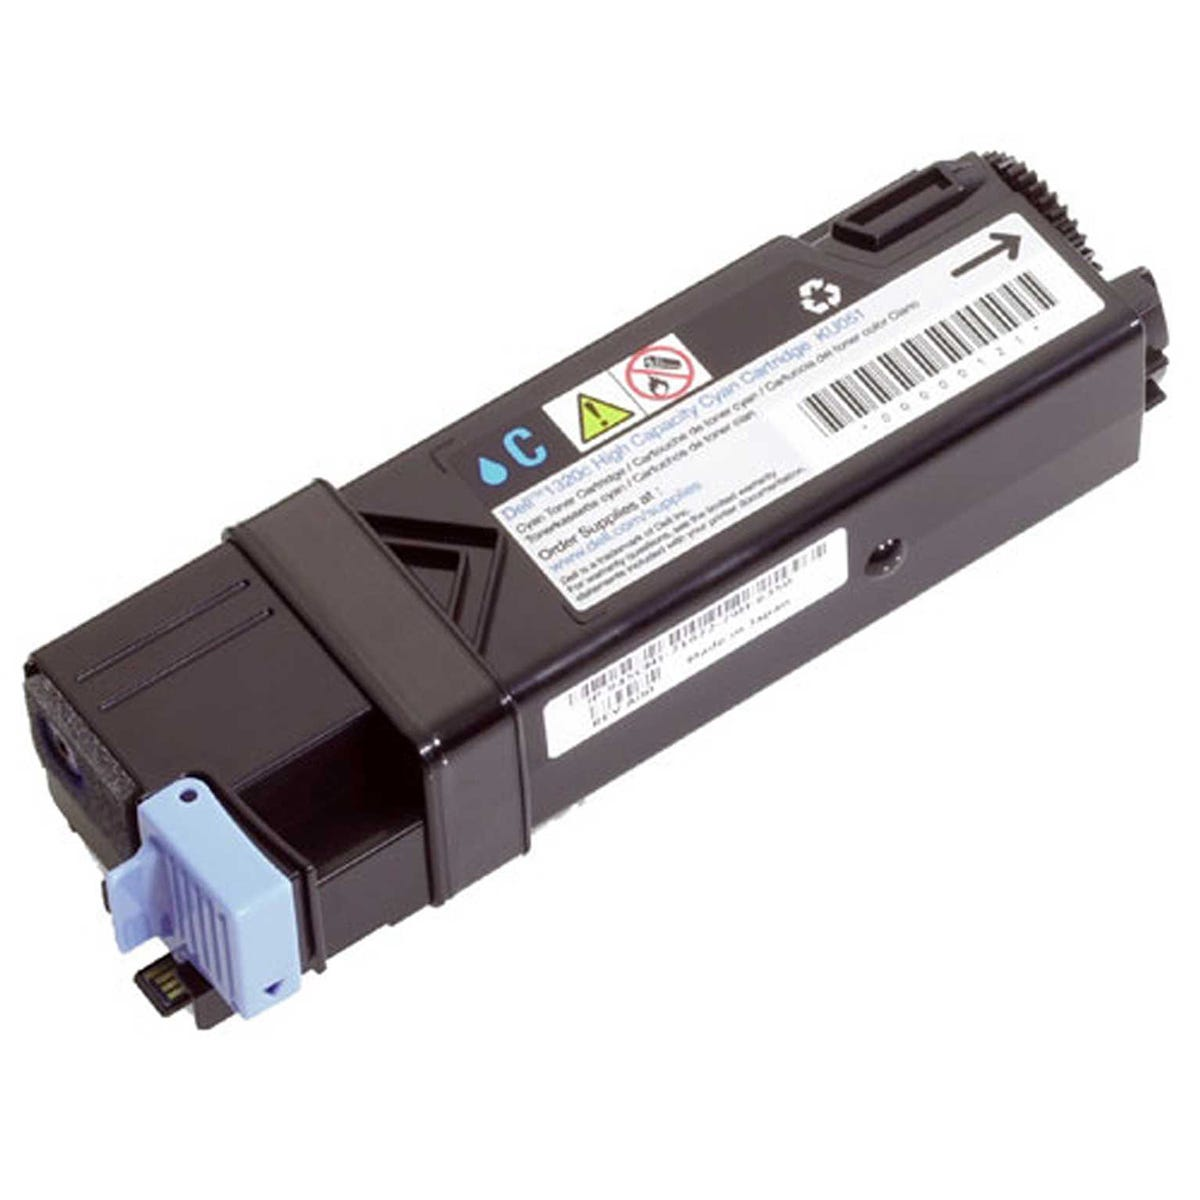 Dell P238C Printer Ink Toner Cartridge 593-10317, Cyan.